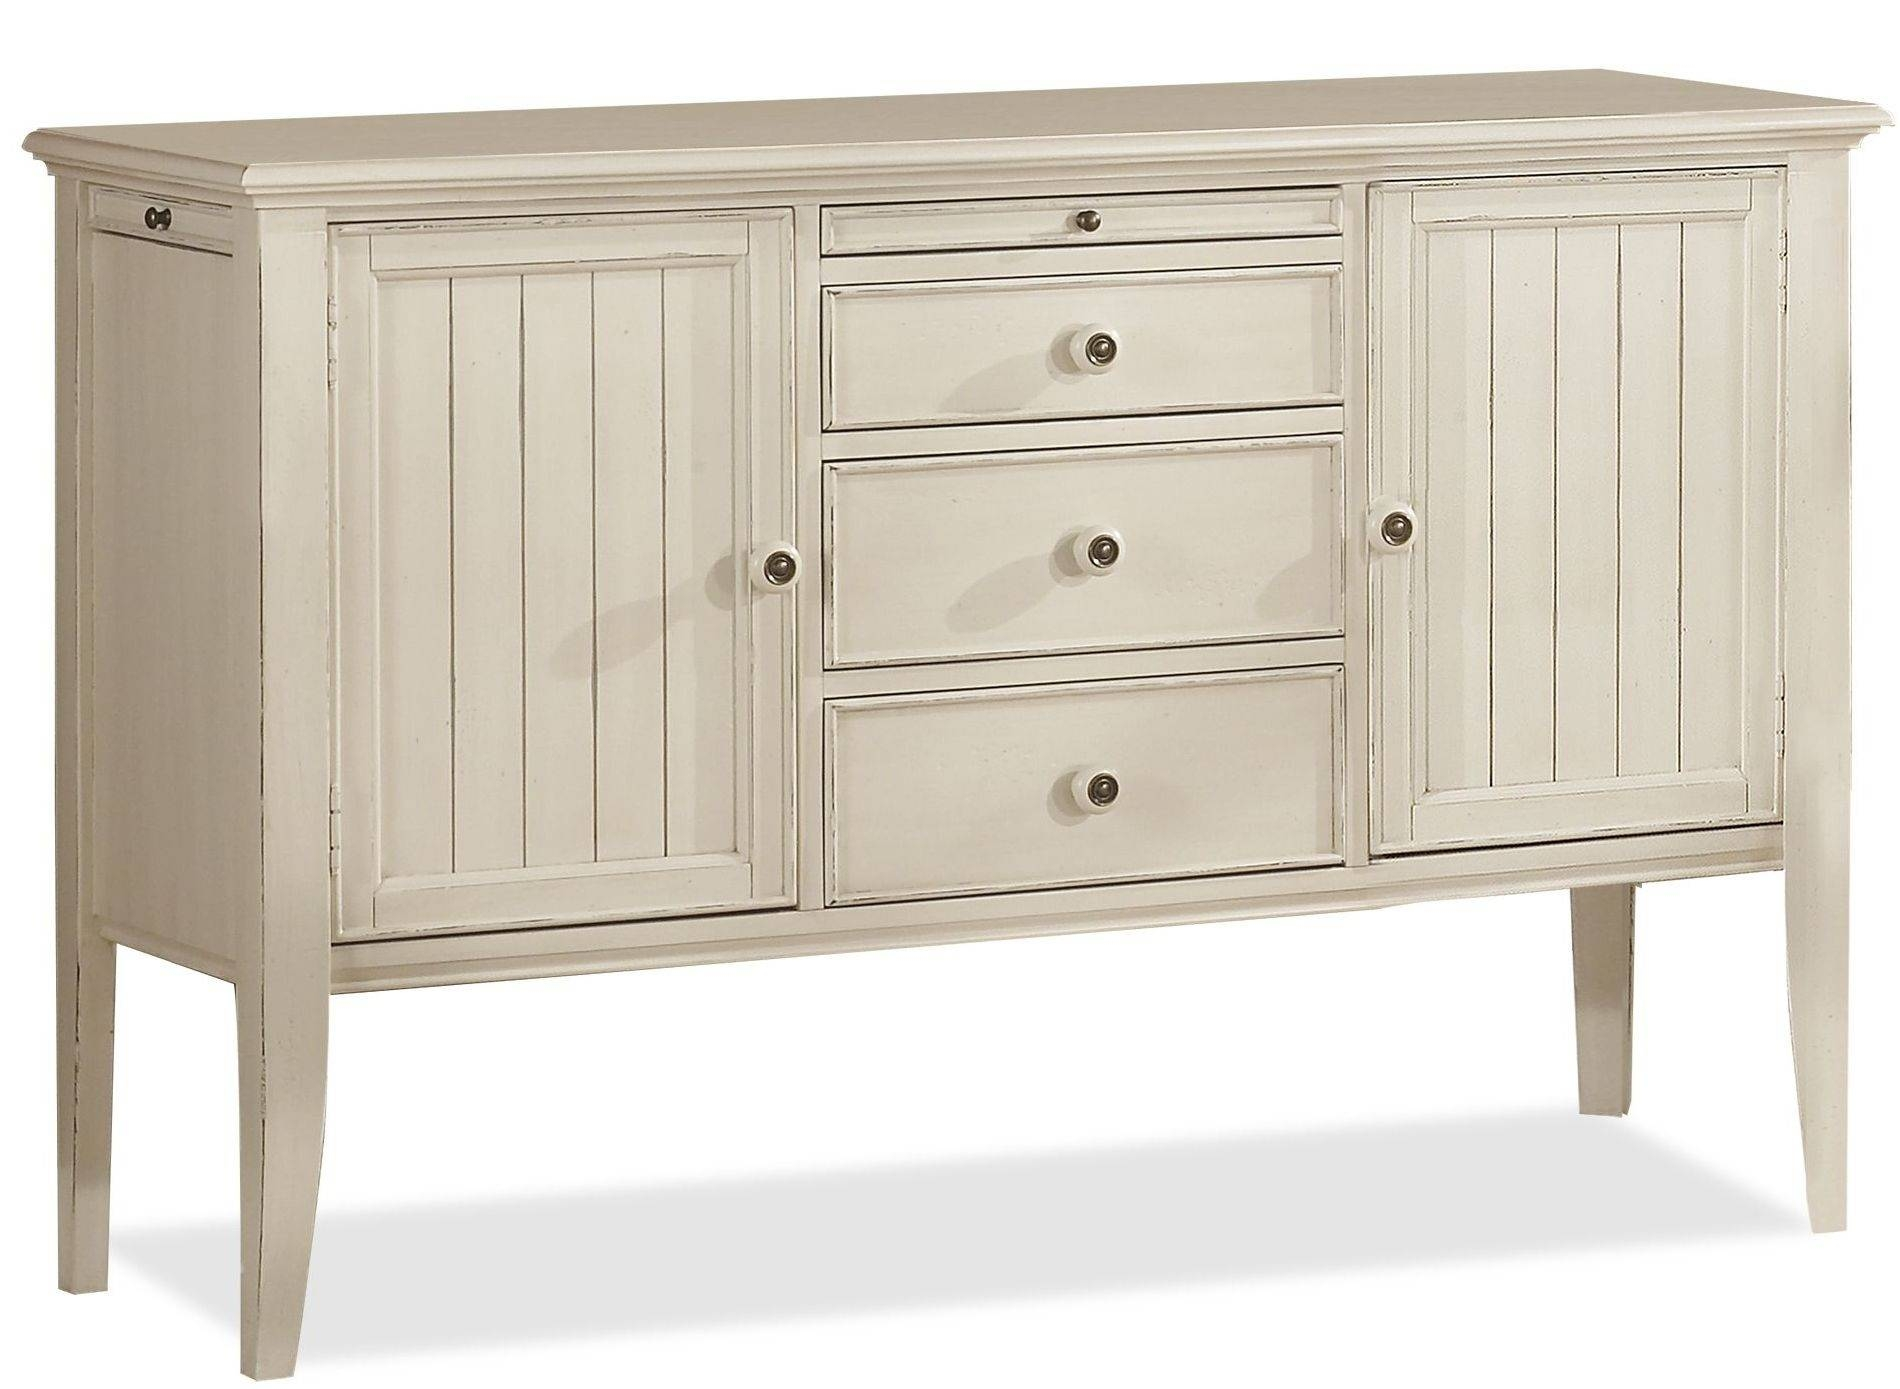 Best Of White Buffet Sideboard – Bjdgjy Within Most Recently Released Sideboards And Buffet Tables (#1 of 15)